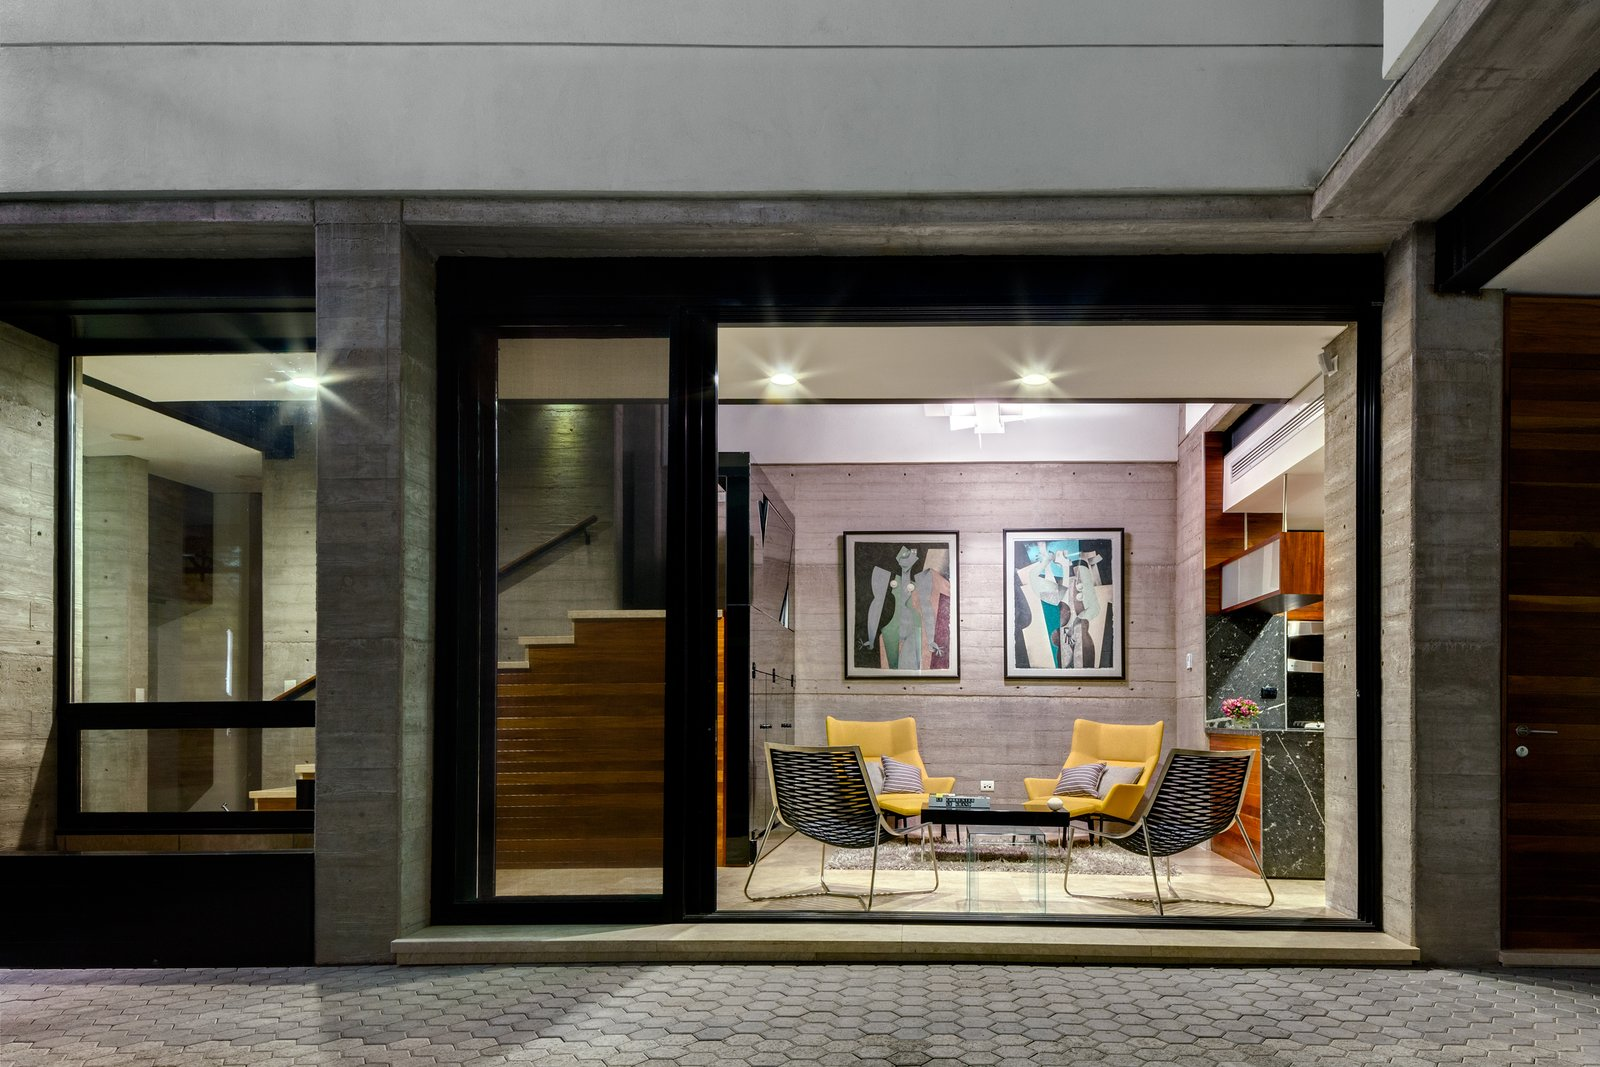 The home's living room connects to the patio through sliding glass doors. Both social spaces, the living room and kitchen, have double high ceilings. These areas are divided by the granite kitchen bar, and are unified by the open patio.  Hybrid Home by Sarah Akkoush